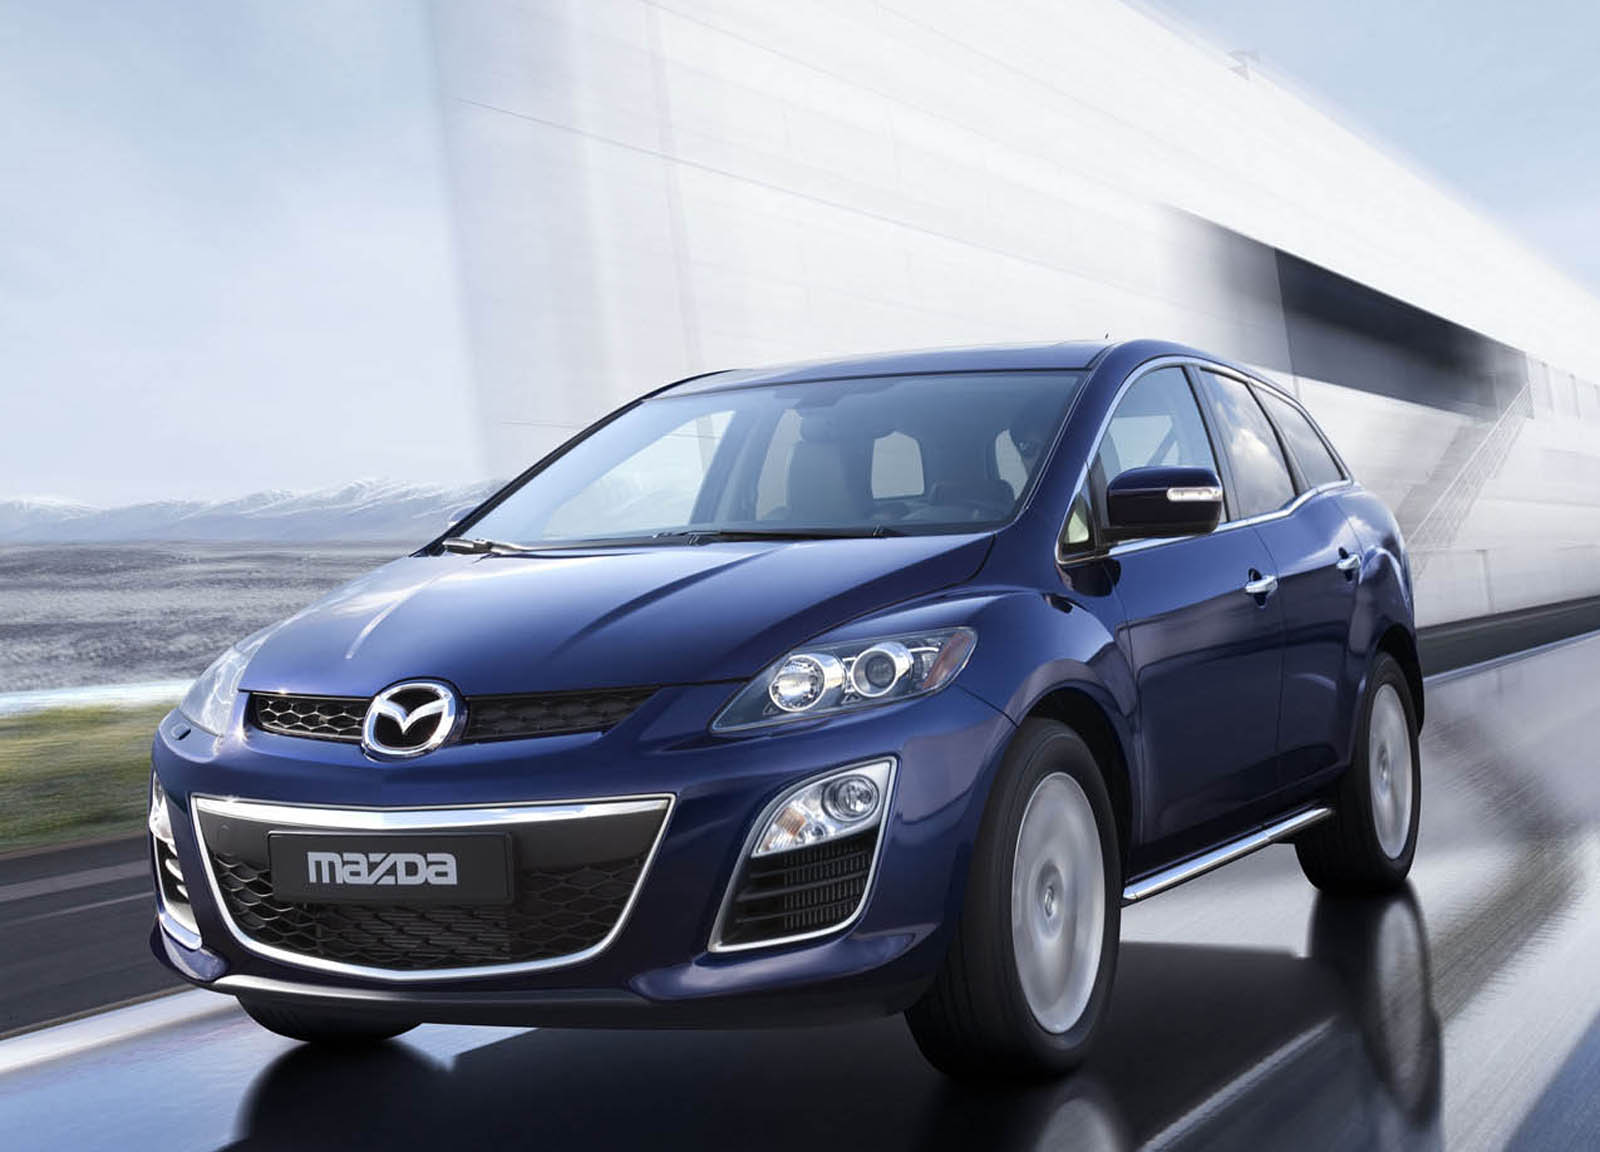 mazda 39 s developing a new crossover just for the us carscoops. Black Bedroom Furniture Sets. Home Design Ideas